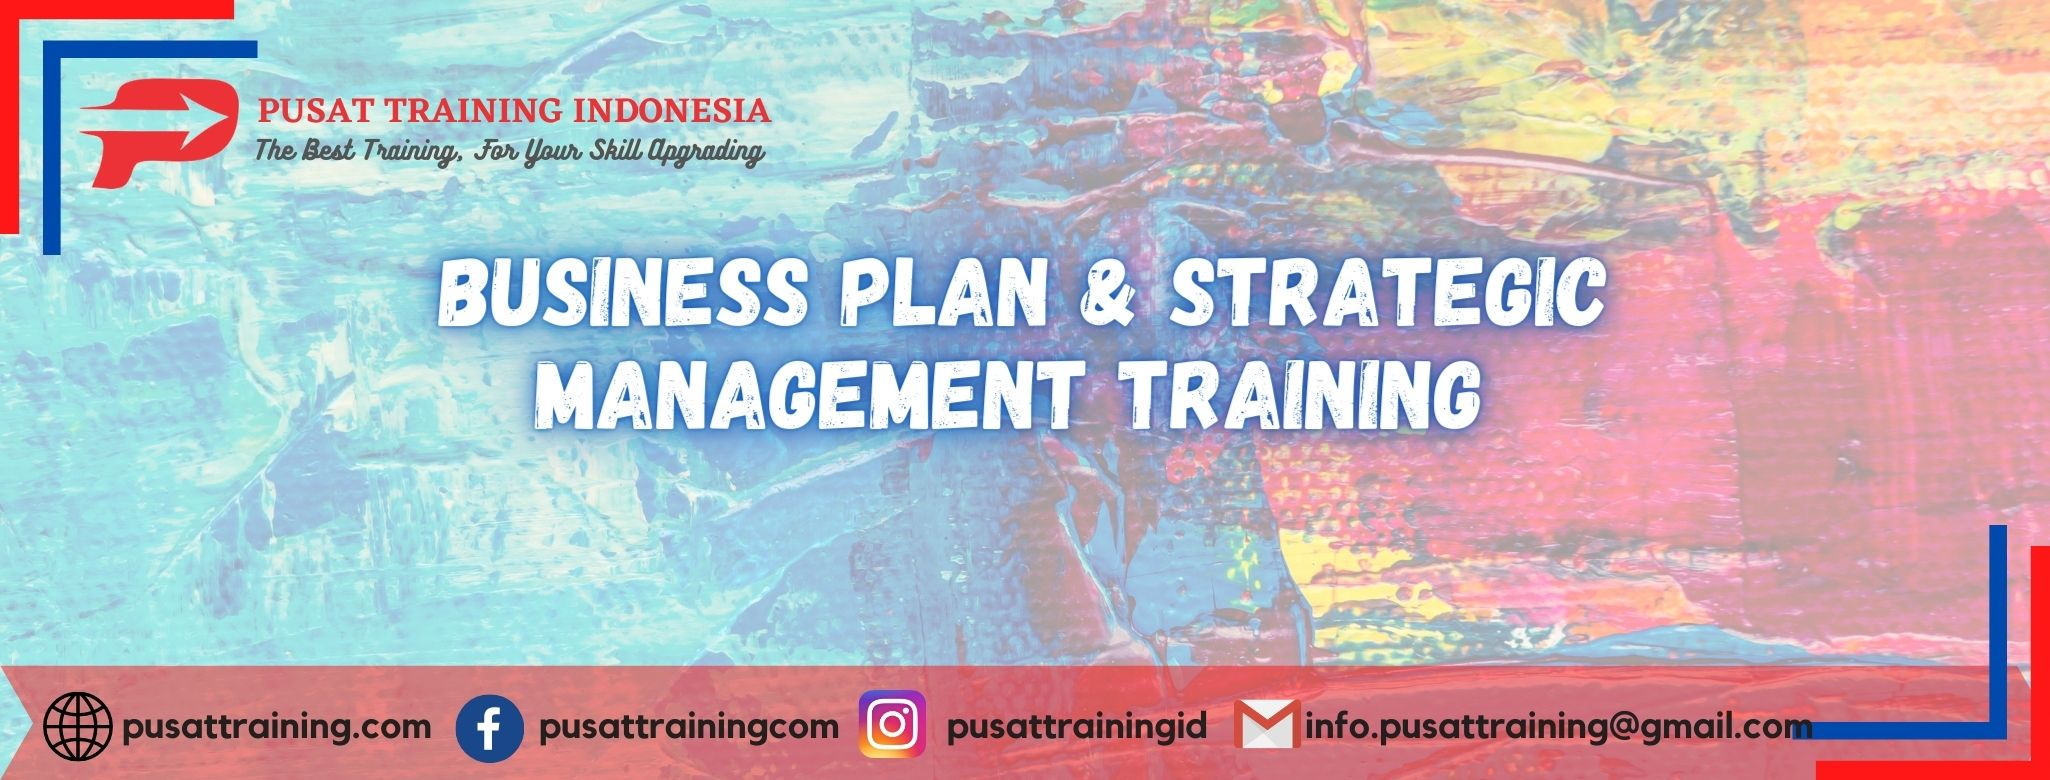 Business-Plan-Strategic-Management-Training